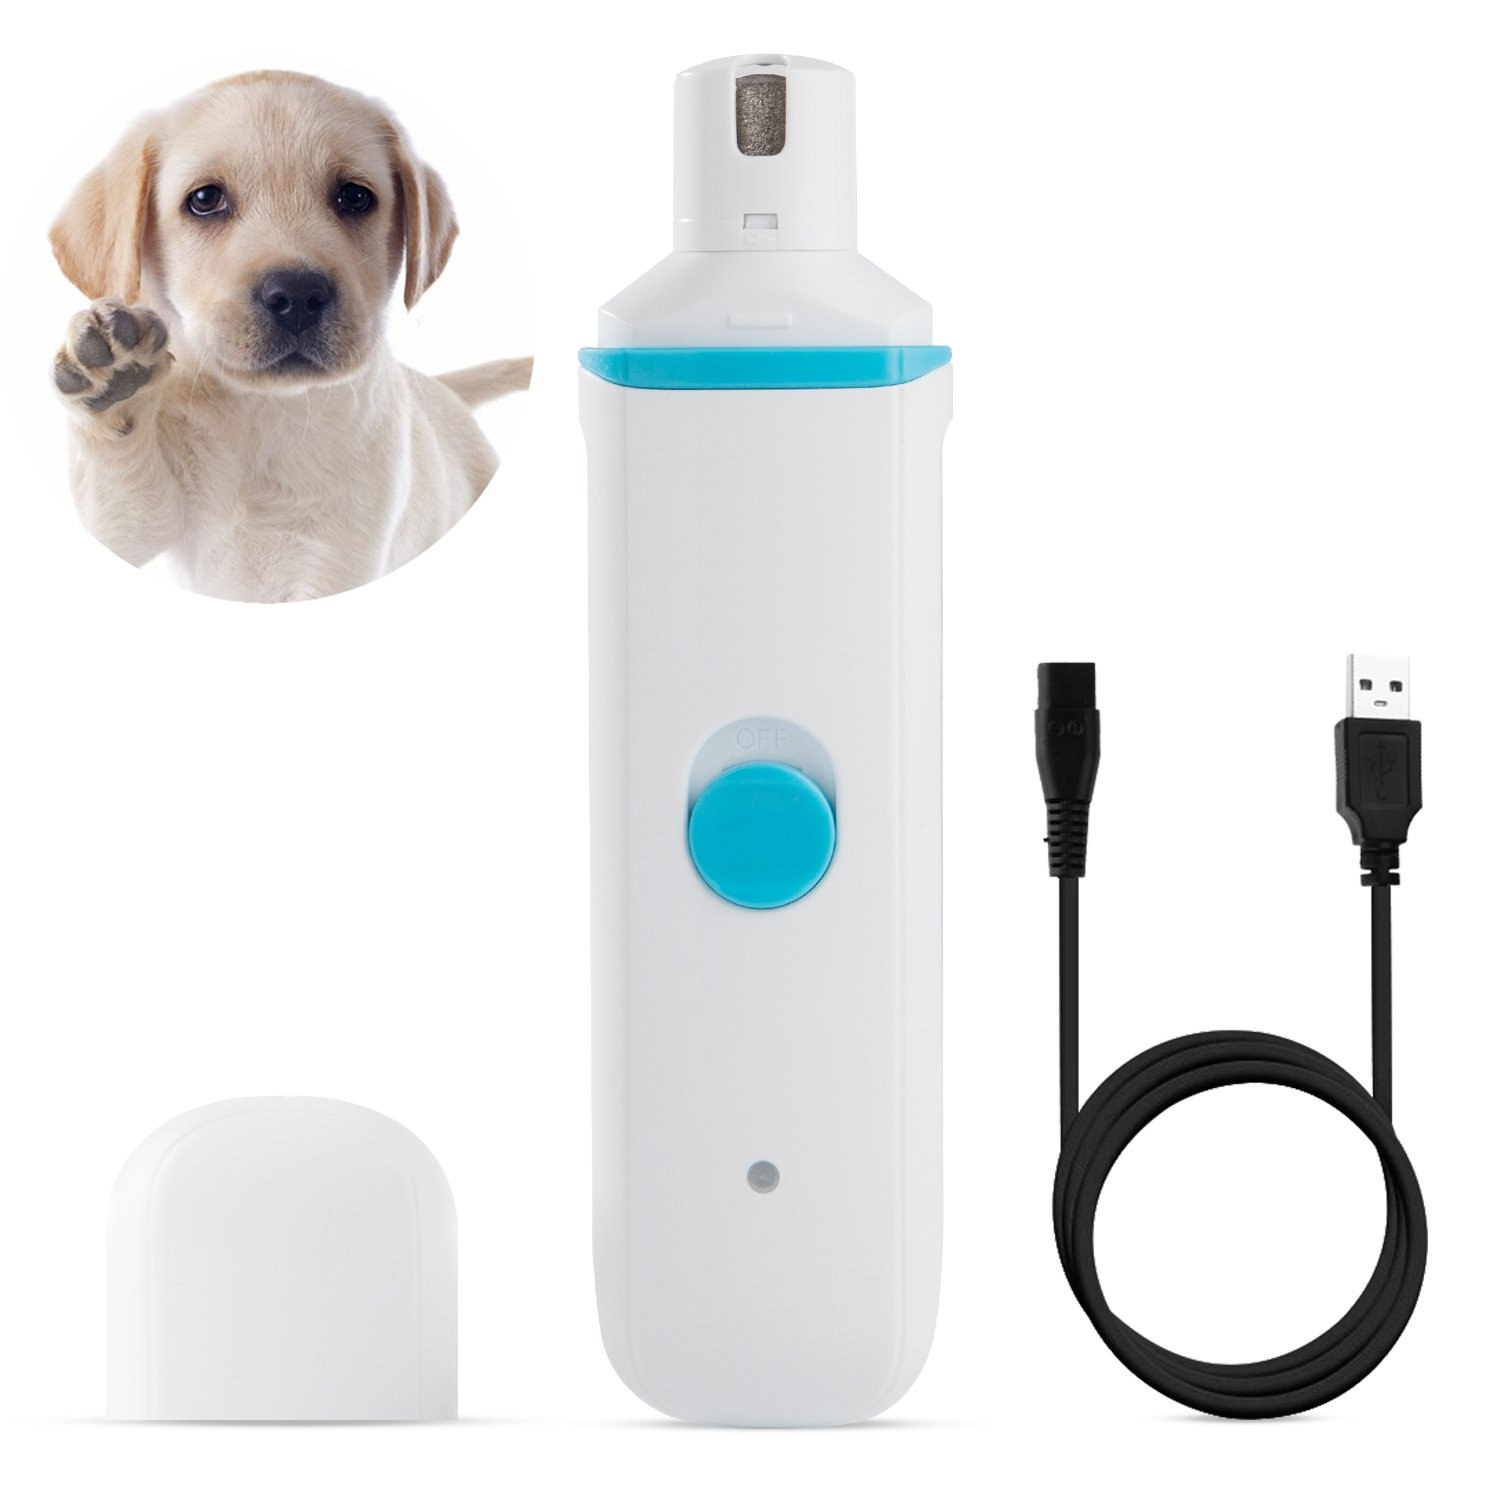 Electric Pet Nail Grinder for Dogs Cats Birds, Nail Trimming Grooming and Shaping, Low Noise with USB Wire Rechargeable and Portable, Blue